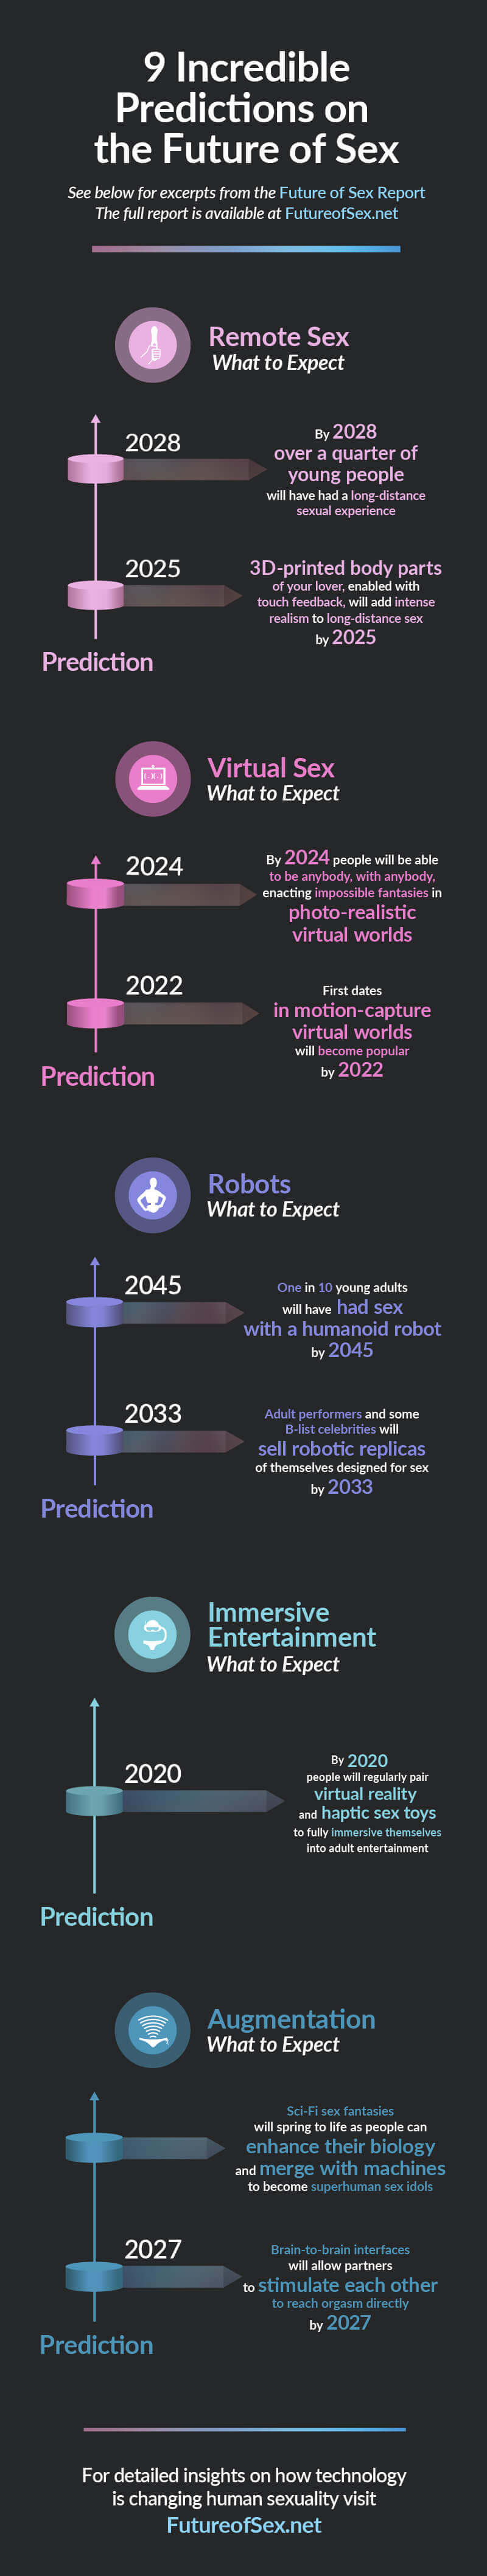 Infographics showing 9 predictions from the Future of Sex Report.